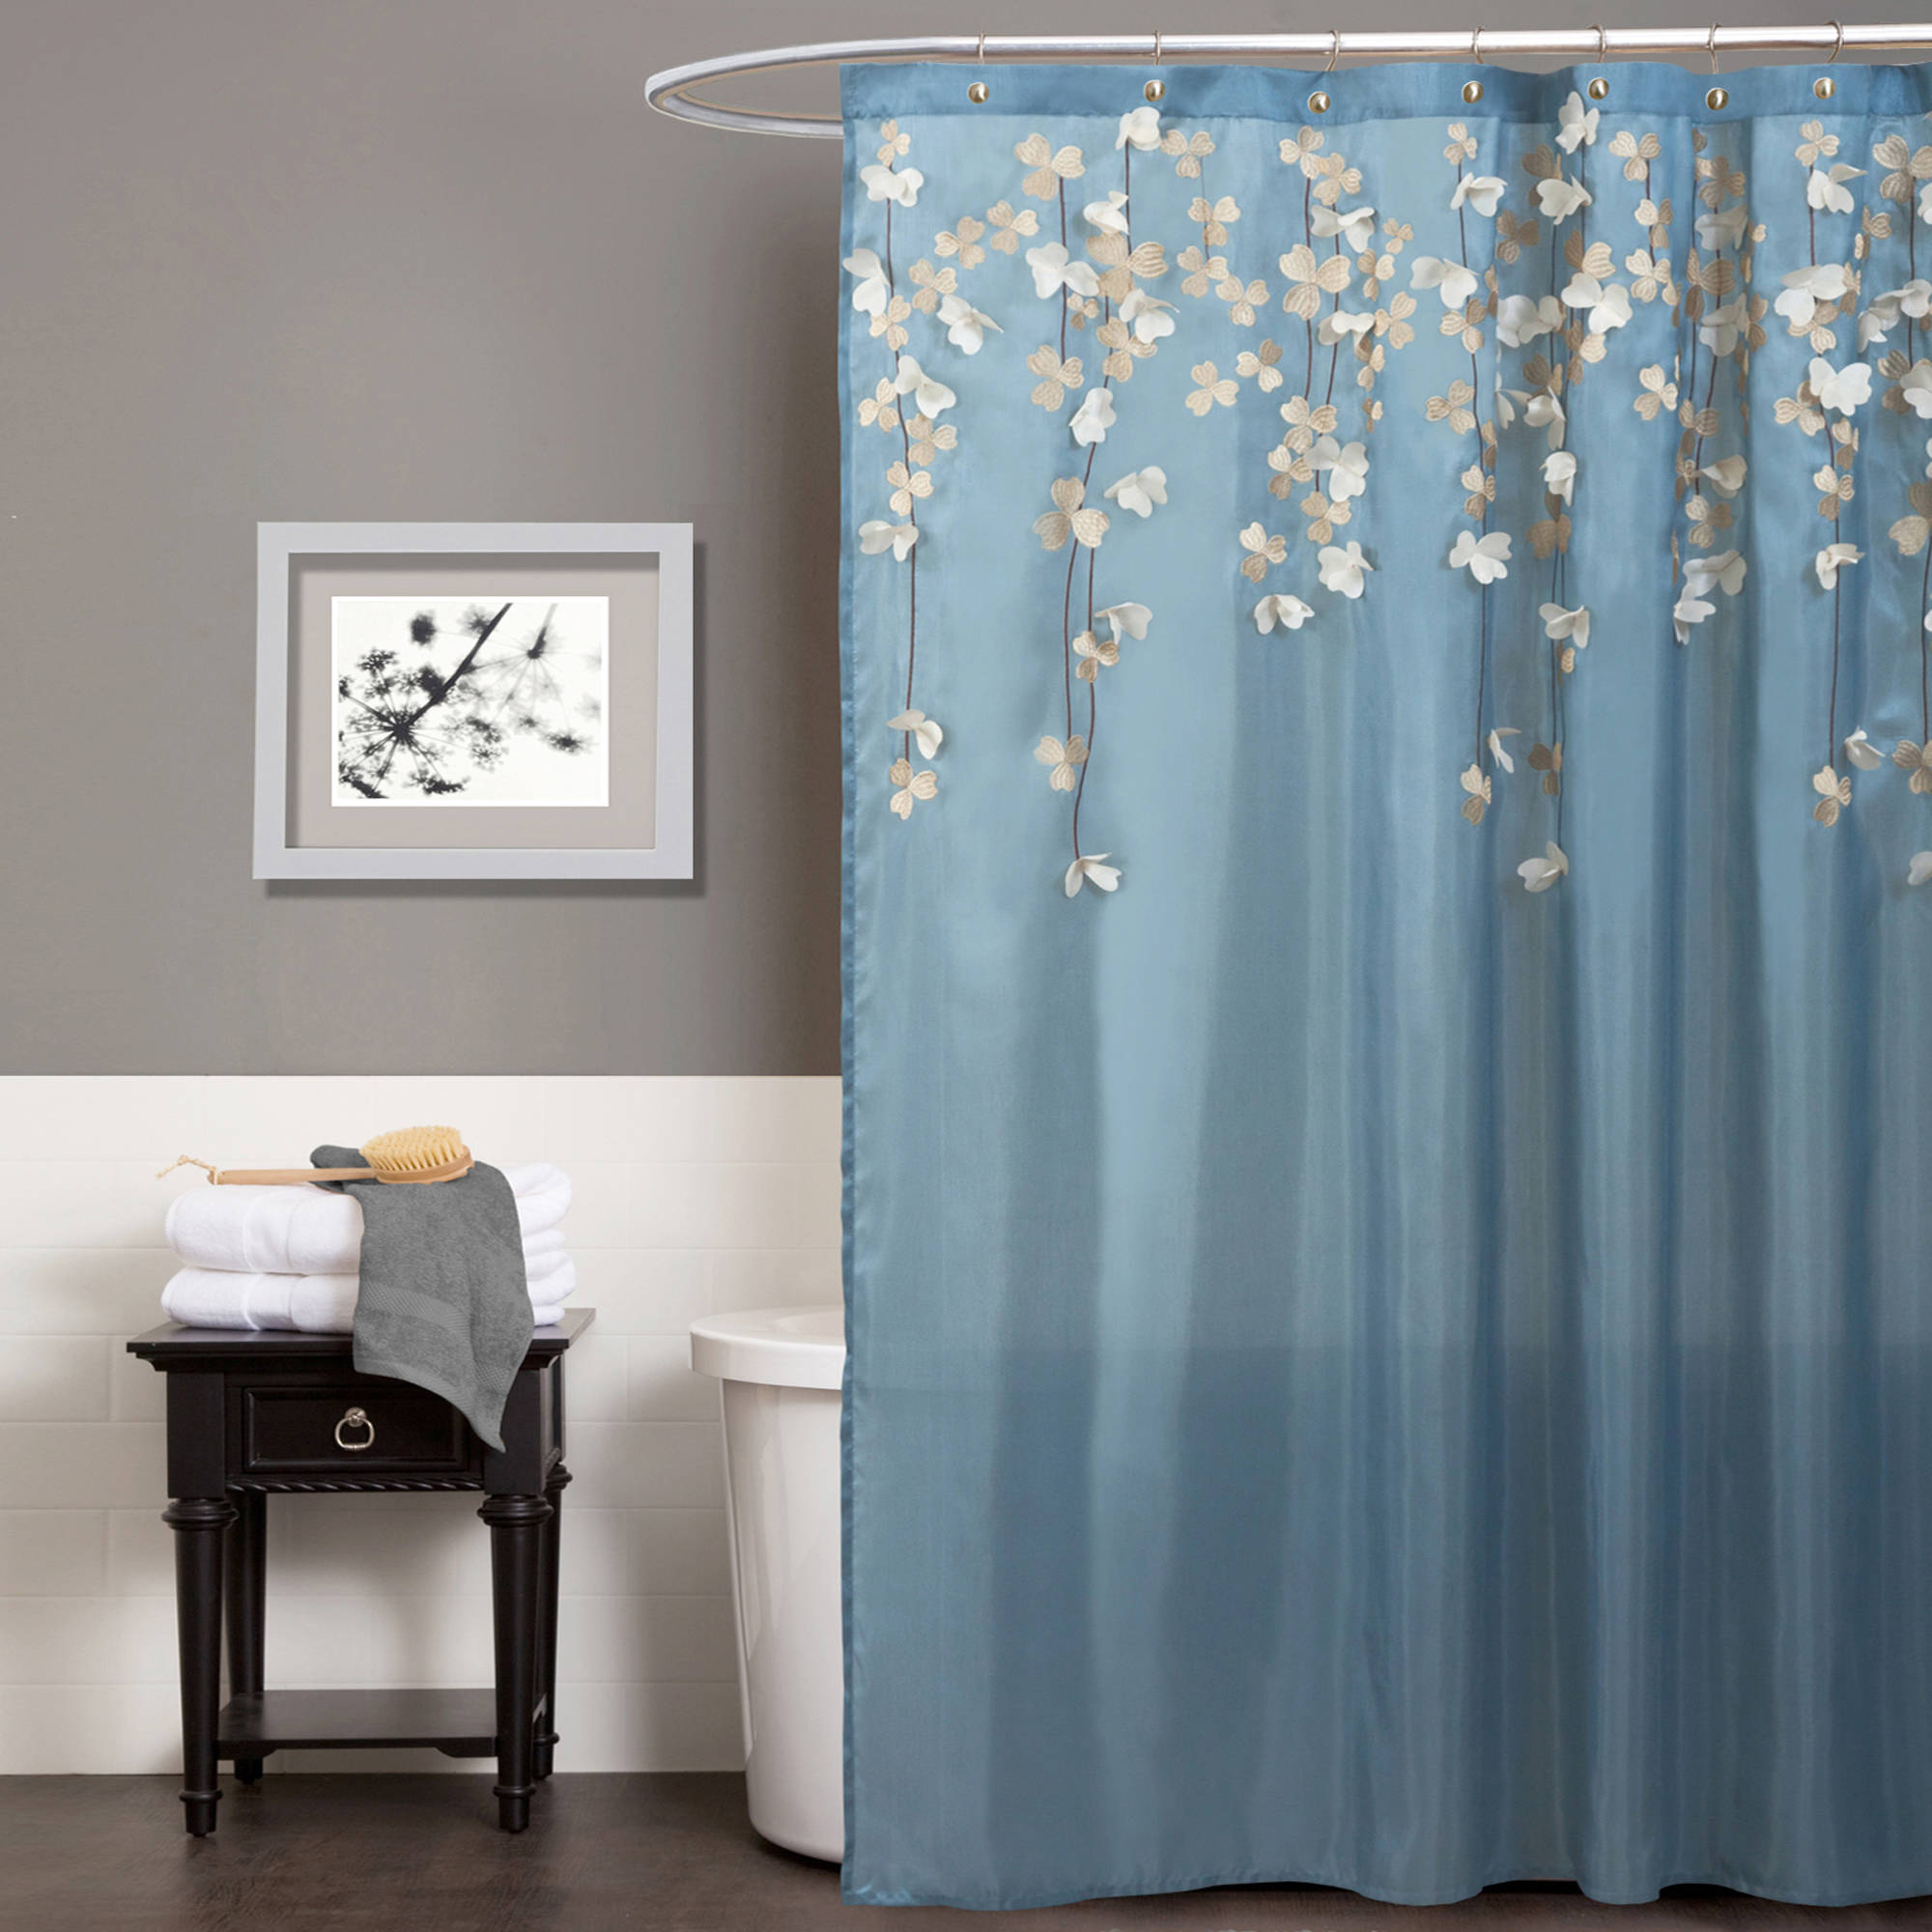 Shower Curtains Walmart Throughout Size 2000 X